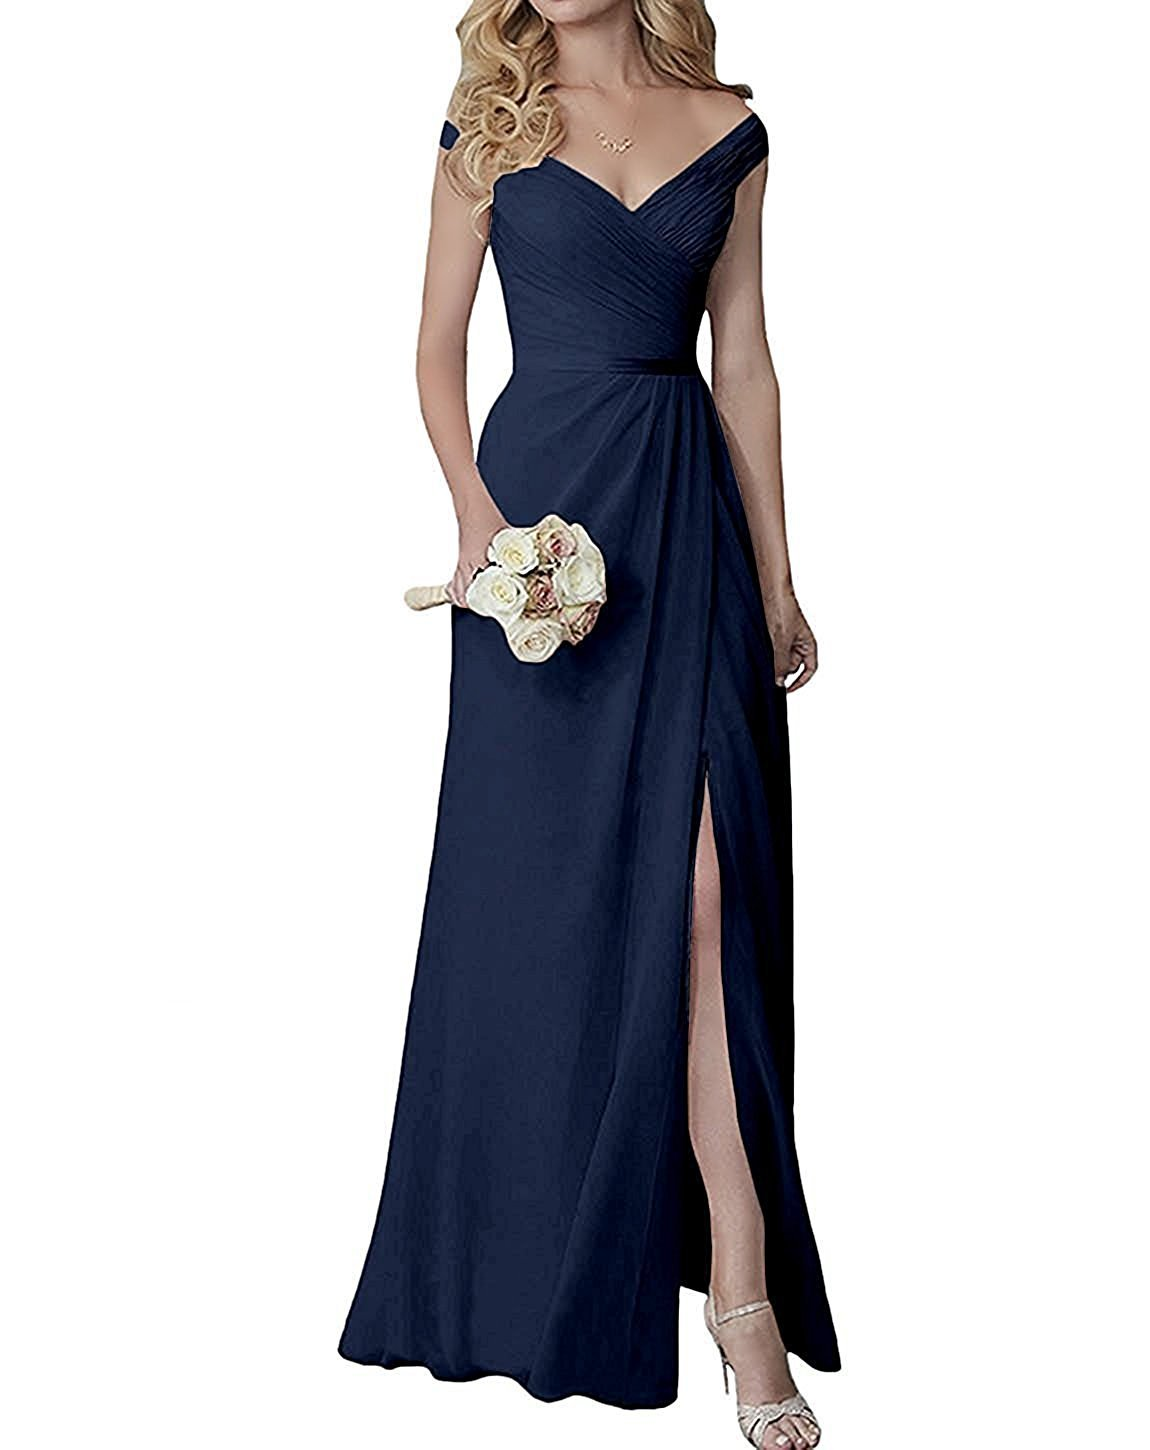 Off The Shoulder Bridesmaid Dresses Long V Neck Split Chiffon Prom Evening Gowns